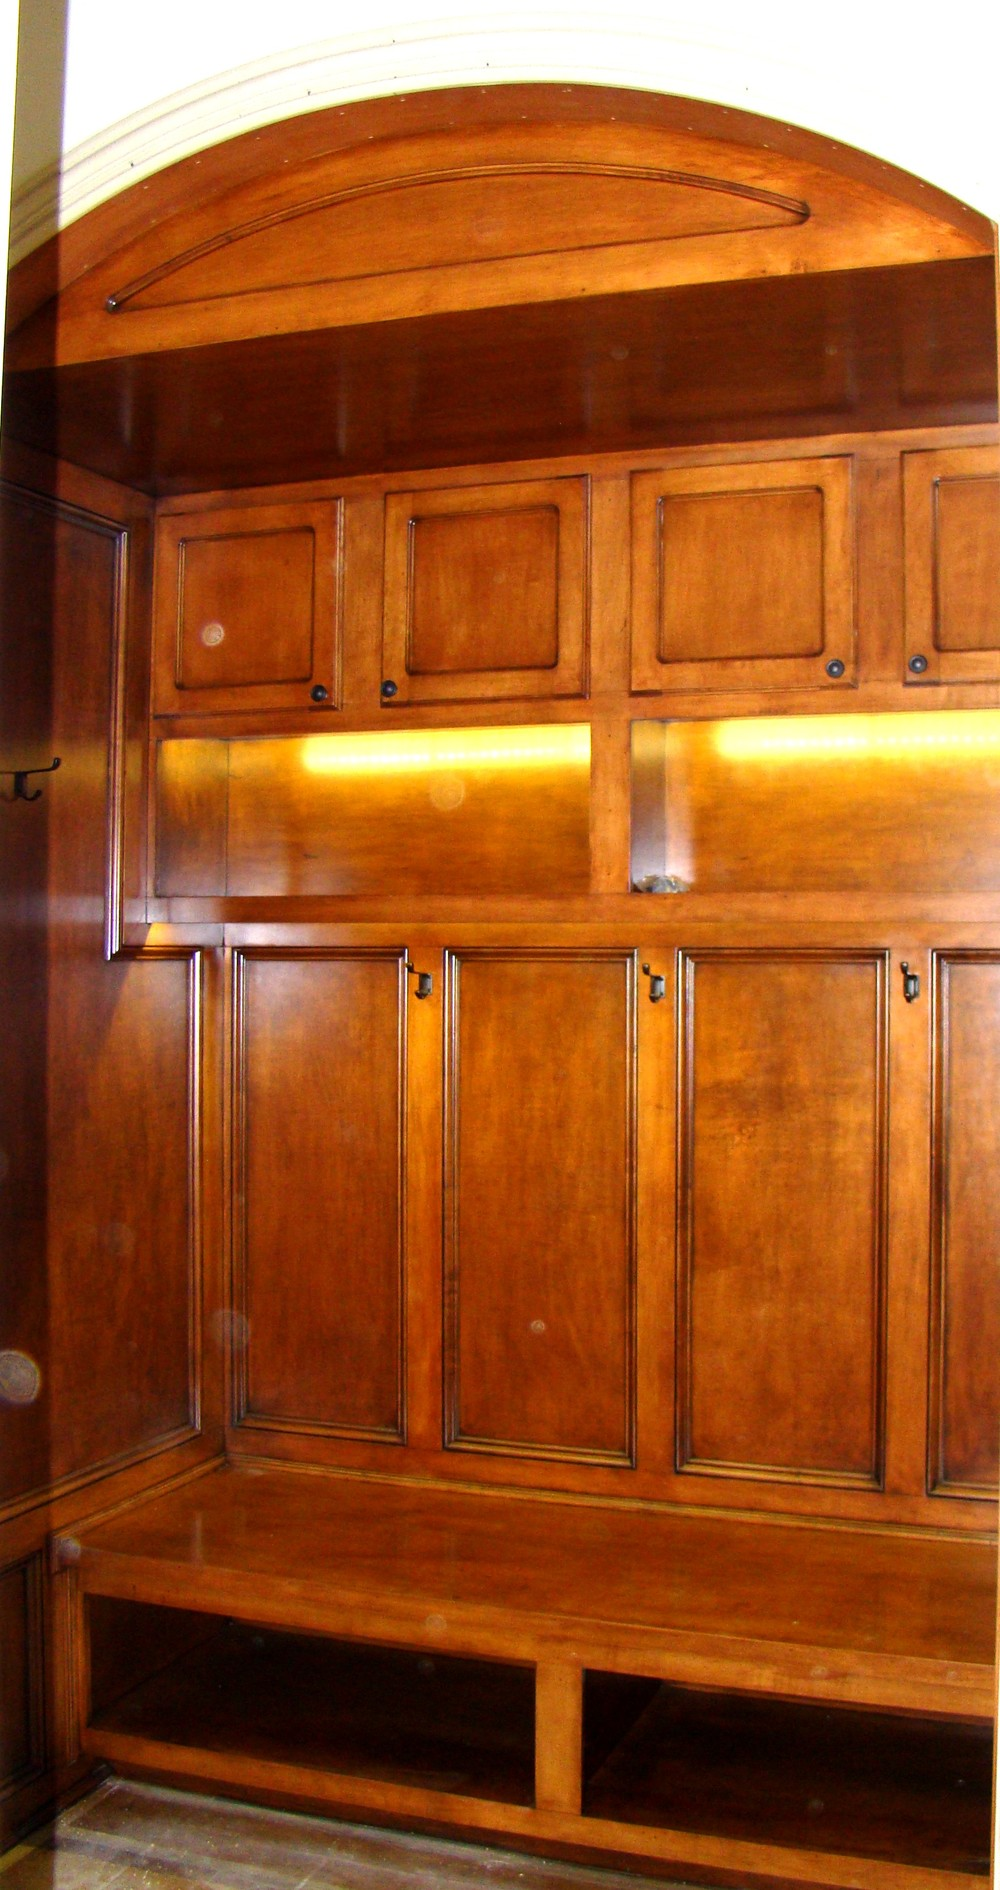 Mud Room Paneled Seat with Storage, Lights and Hooks